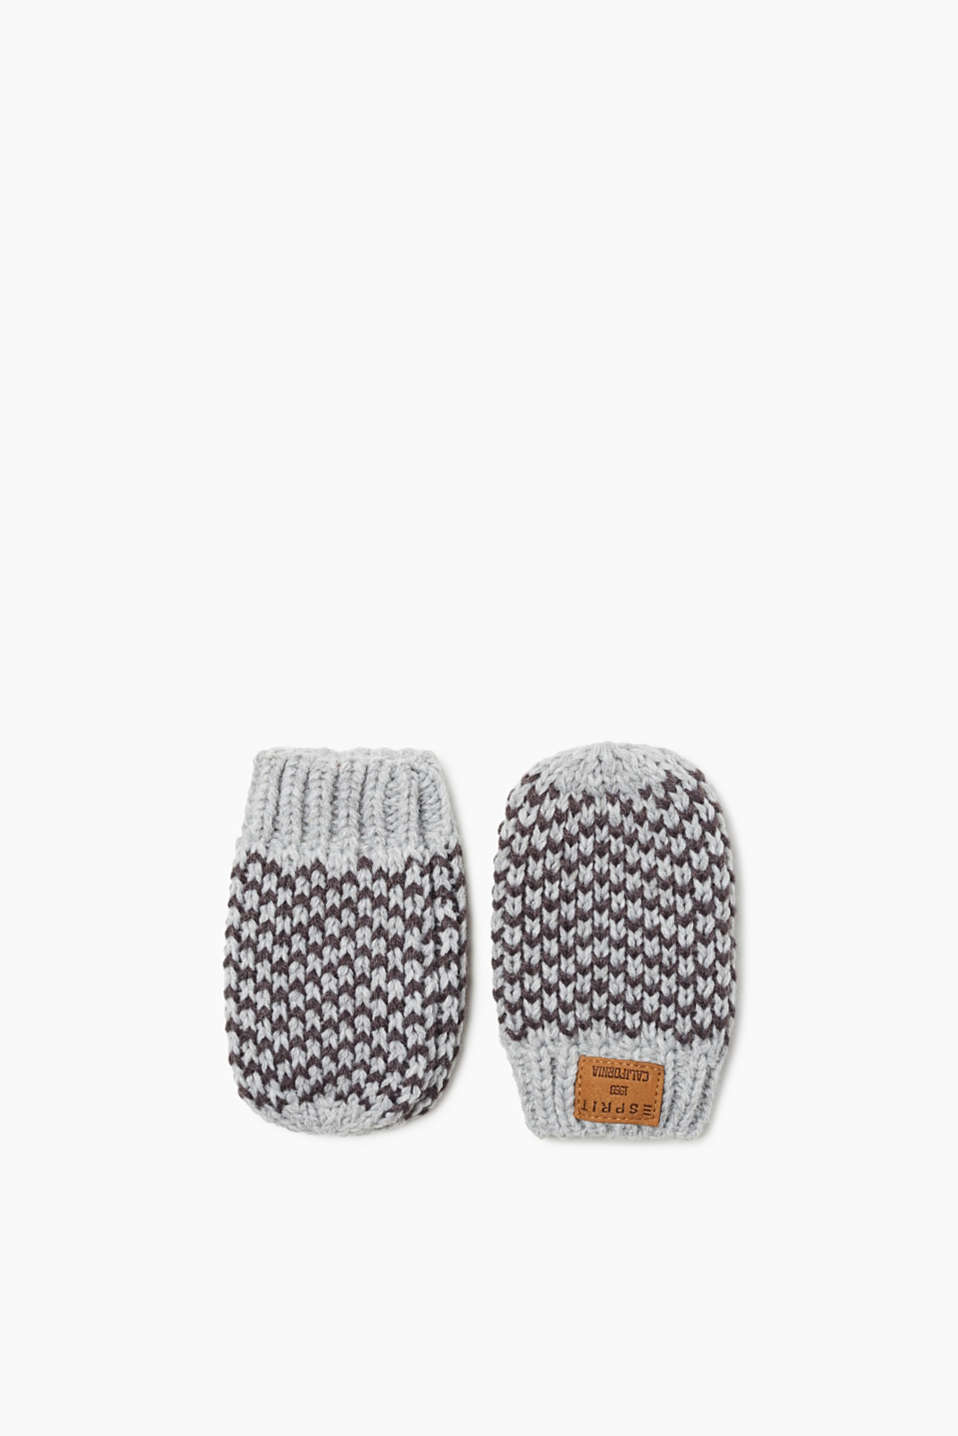 These mittens in a patterned knit are a soft and warm accessory for our little ones.